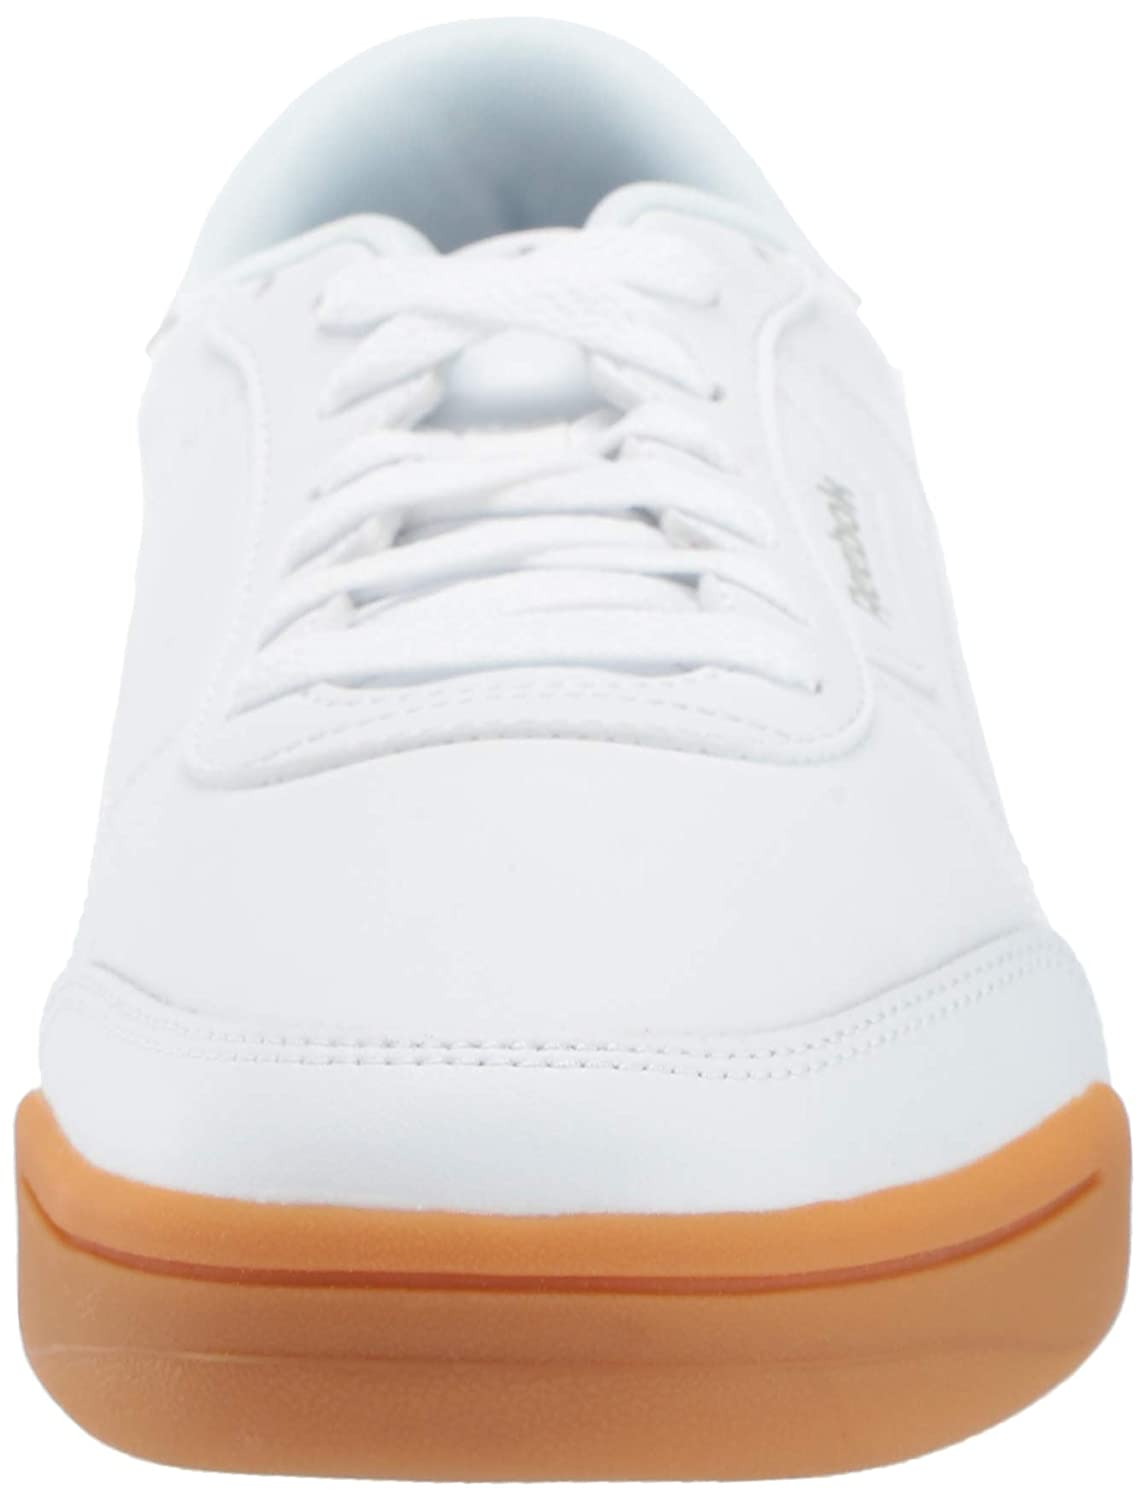 Reebok - Royal Heredis Donna Donna Donna 68ddcd